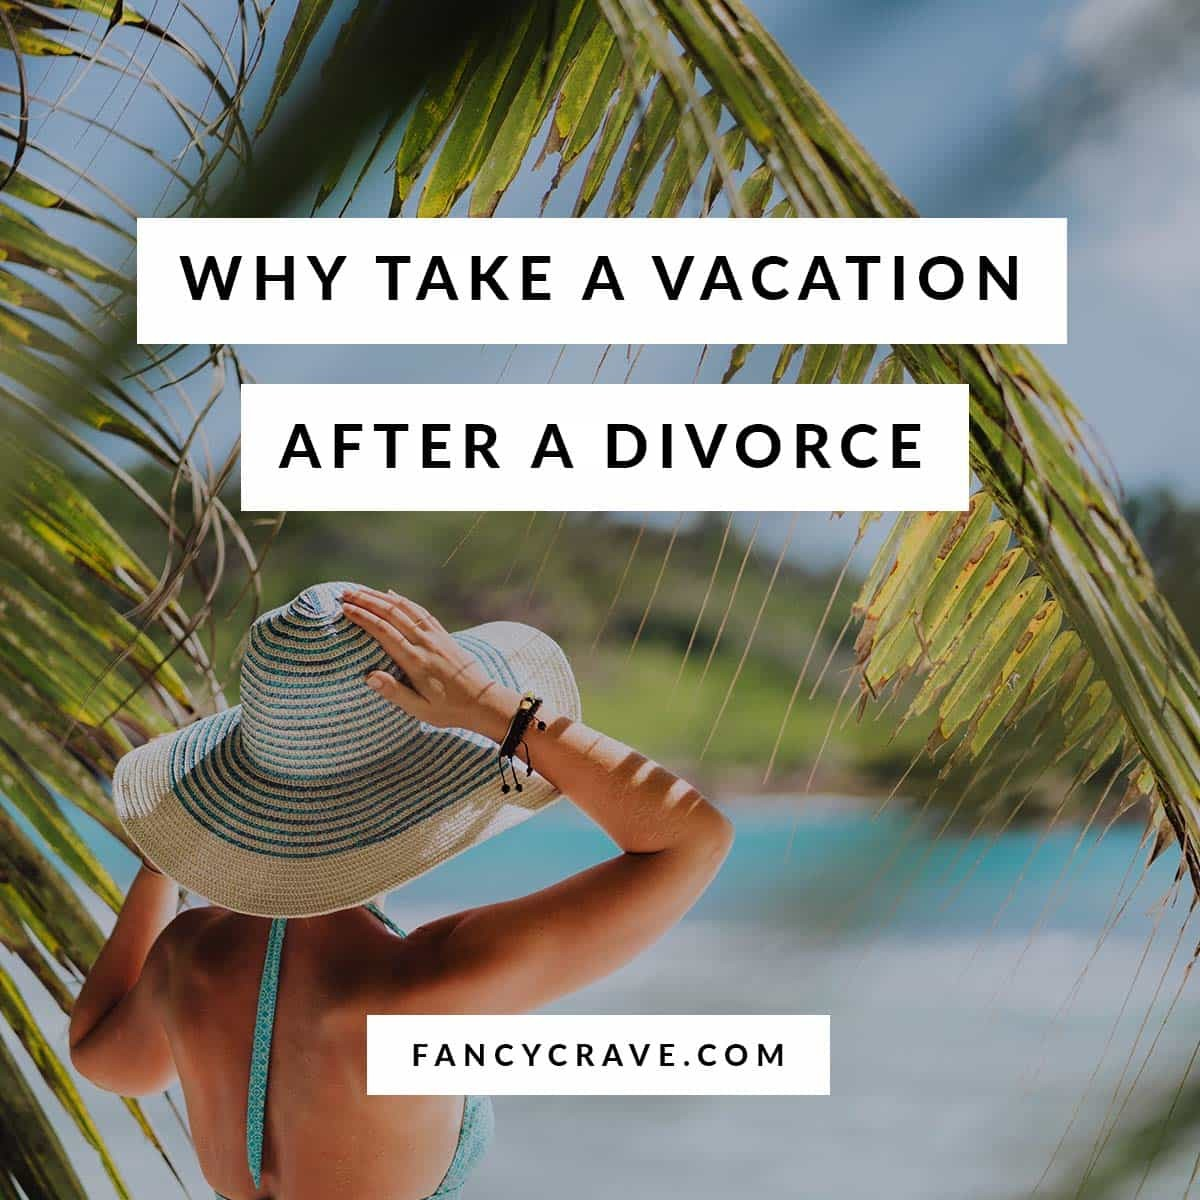 Why Take a Vacation After a Divorce